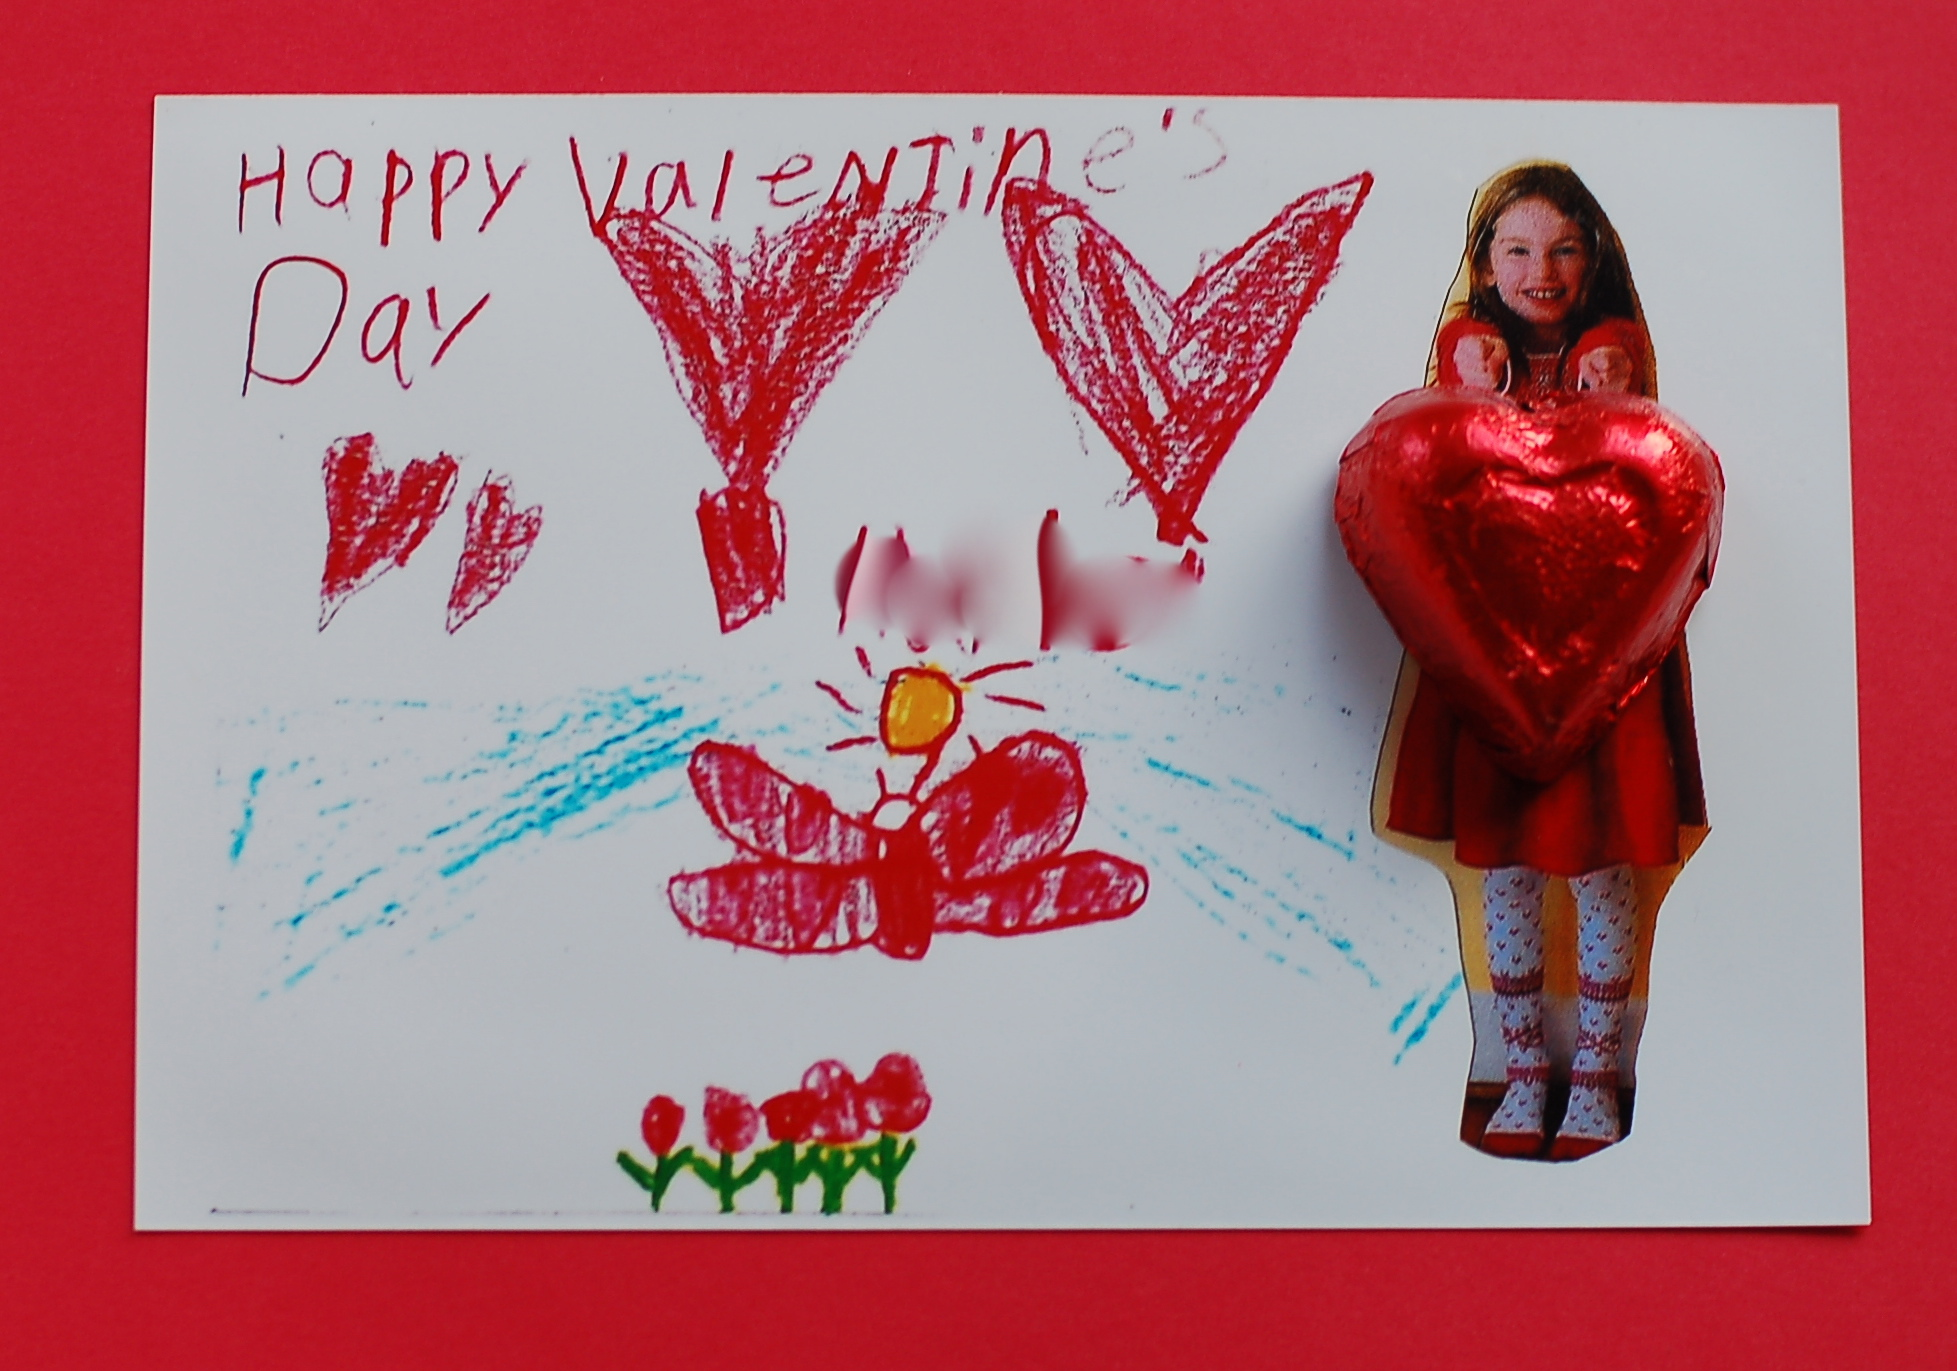 85 homemade Valentine cards are ready for school – How to Make Valentine Cards for School